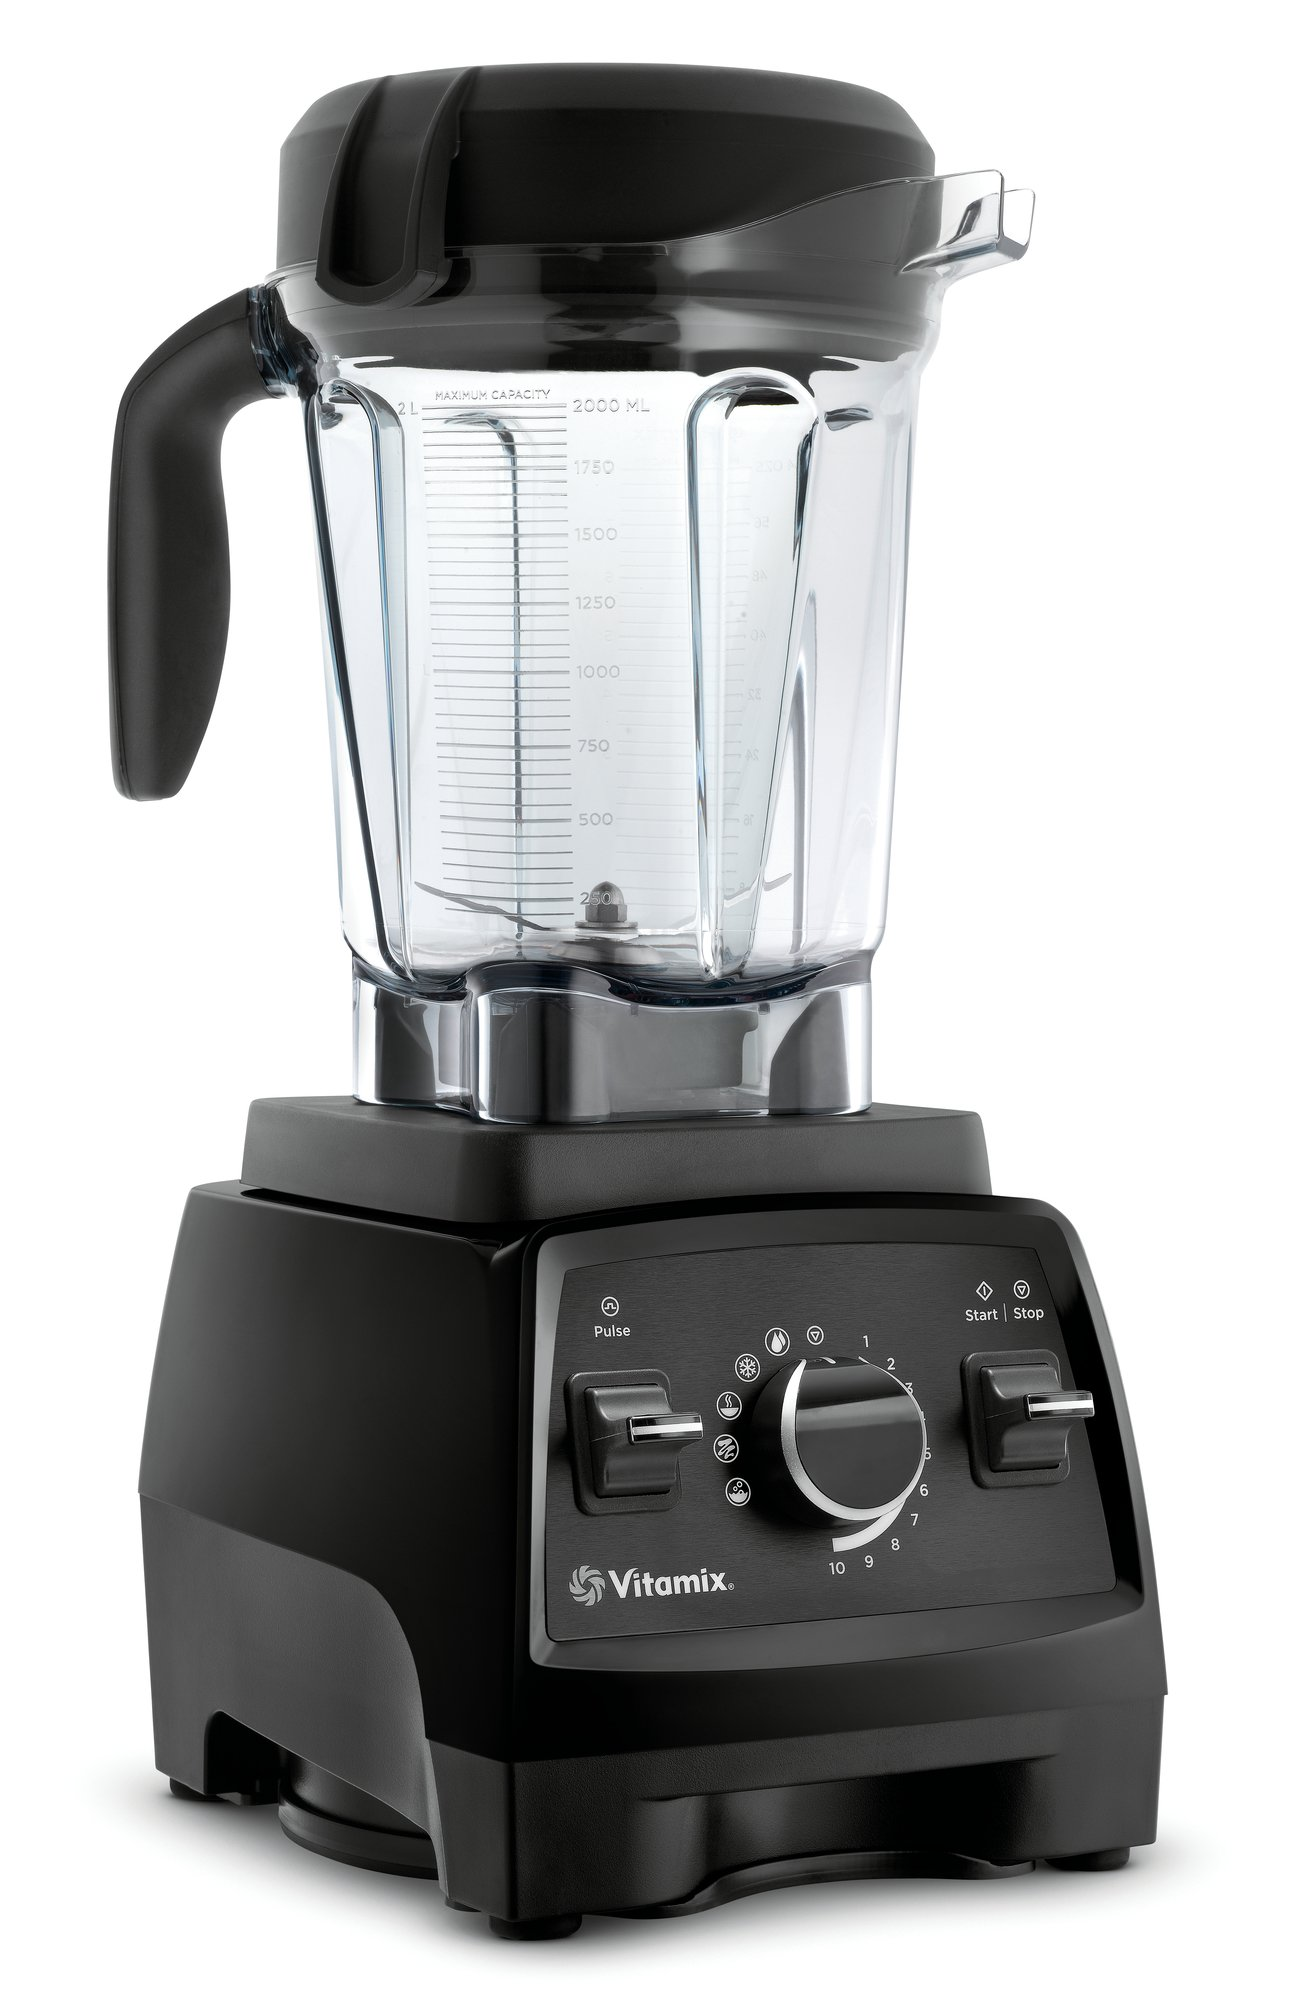 Vitamix Professional Series 750 Blender, Professional-Grade, 64 oz. Low-Profile Container, Black by Vitamix